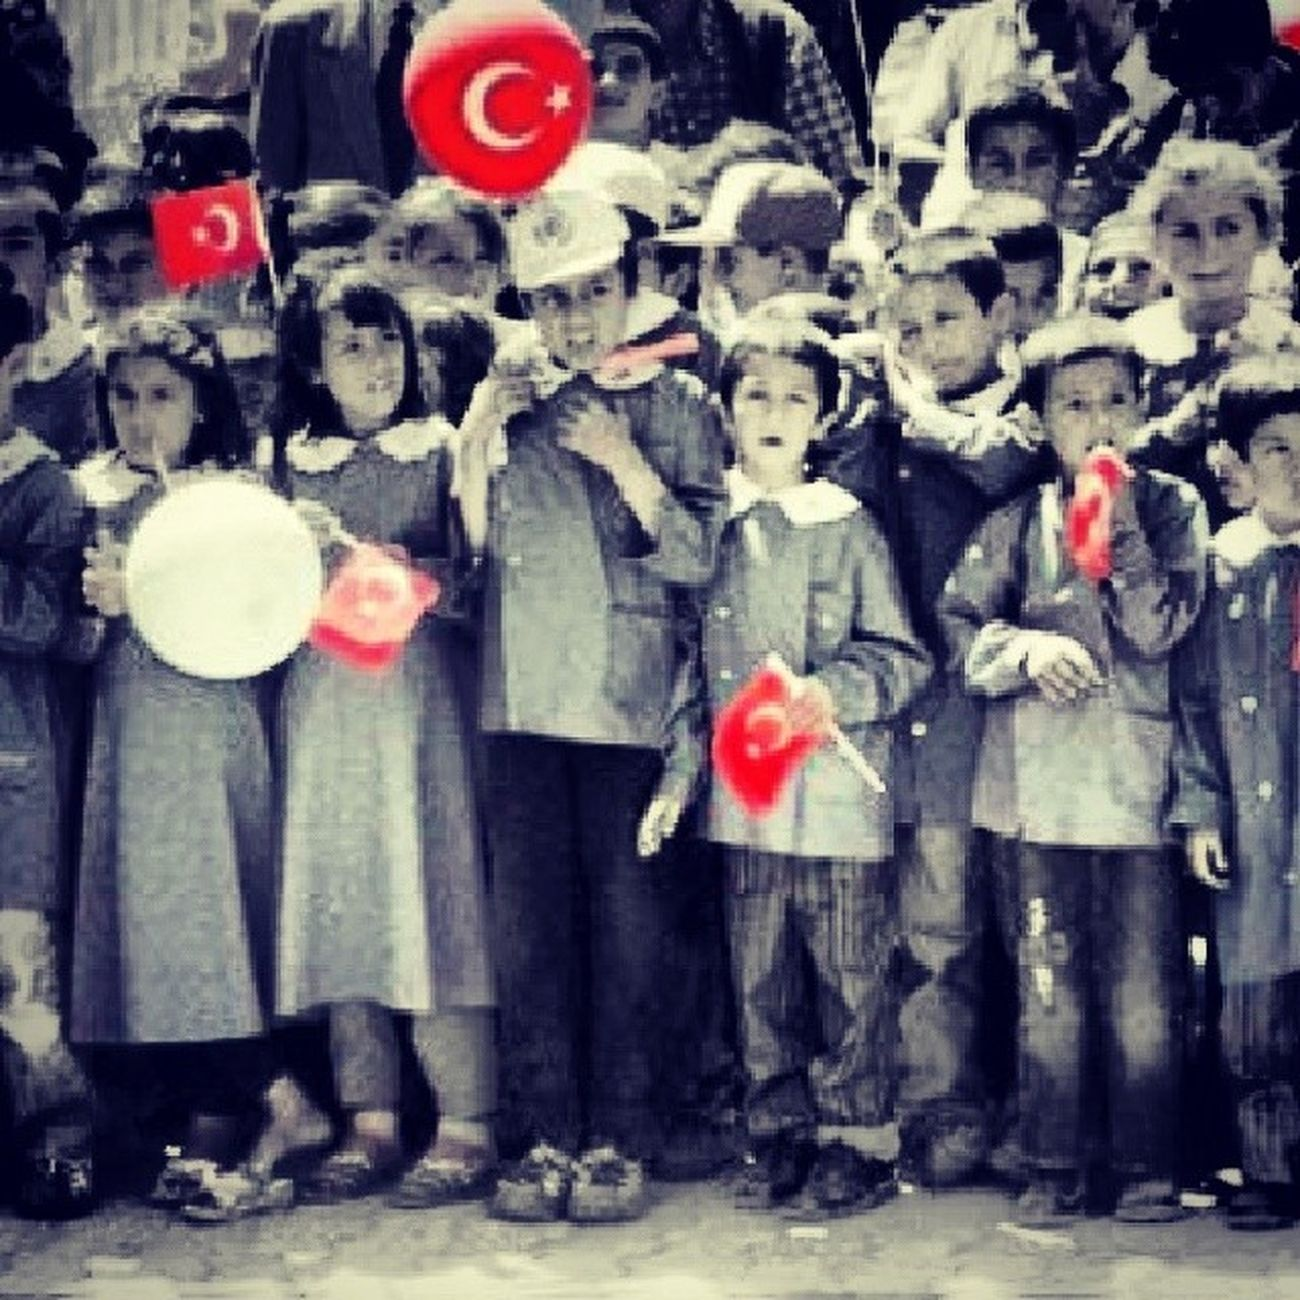 29ekim CumhuriyetBayrami Kutluyoruz Cumhuriyet students school yirmidokuzekim bayram bayrak turkinstagram turkishfollowers turkey ig_turkey instgramturkei turkei turkish turkey turkiye igers igbox latergram instago instamag instacool instagood gaziantep